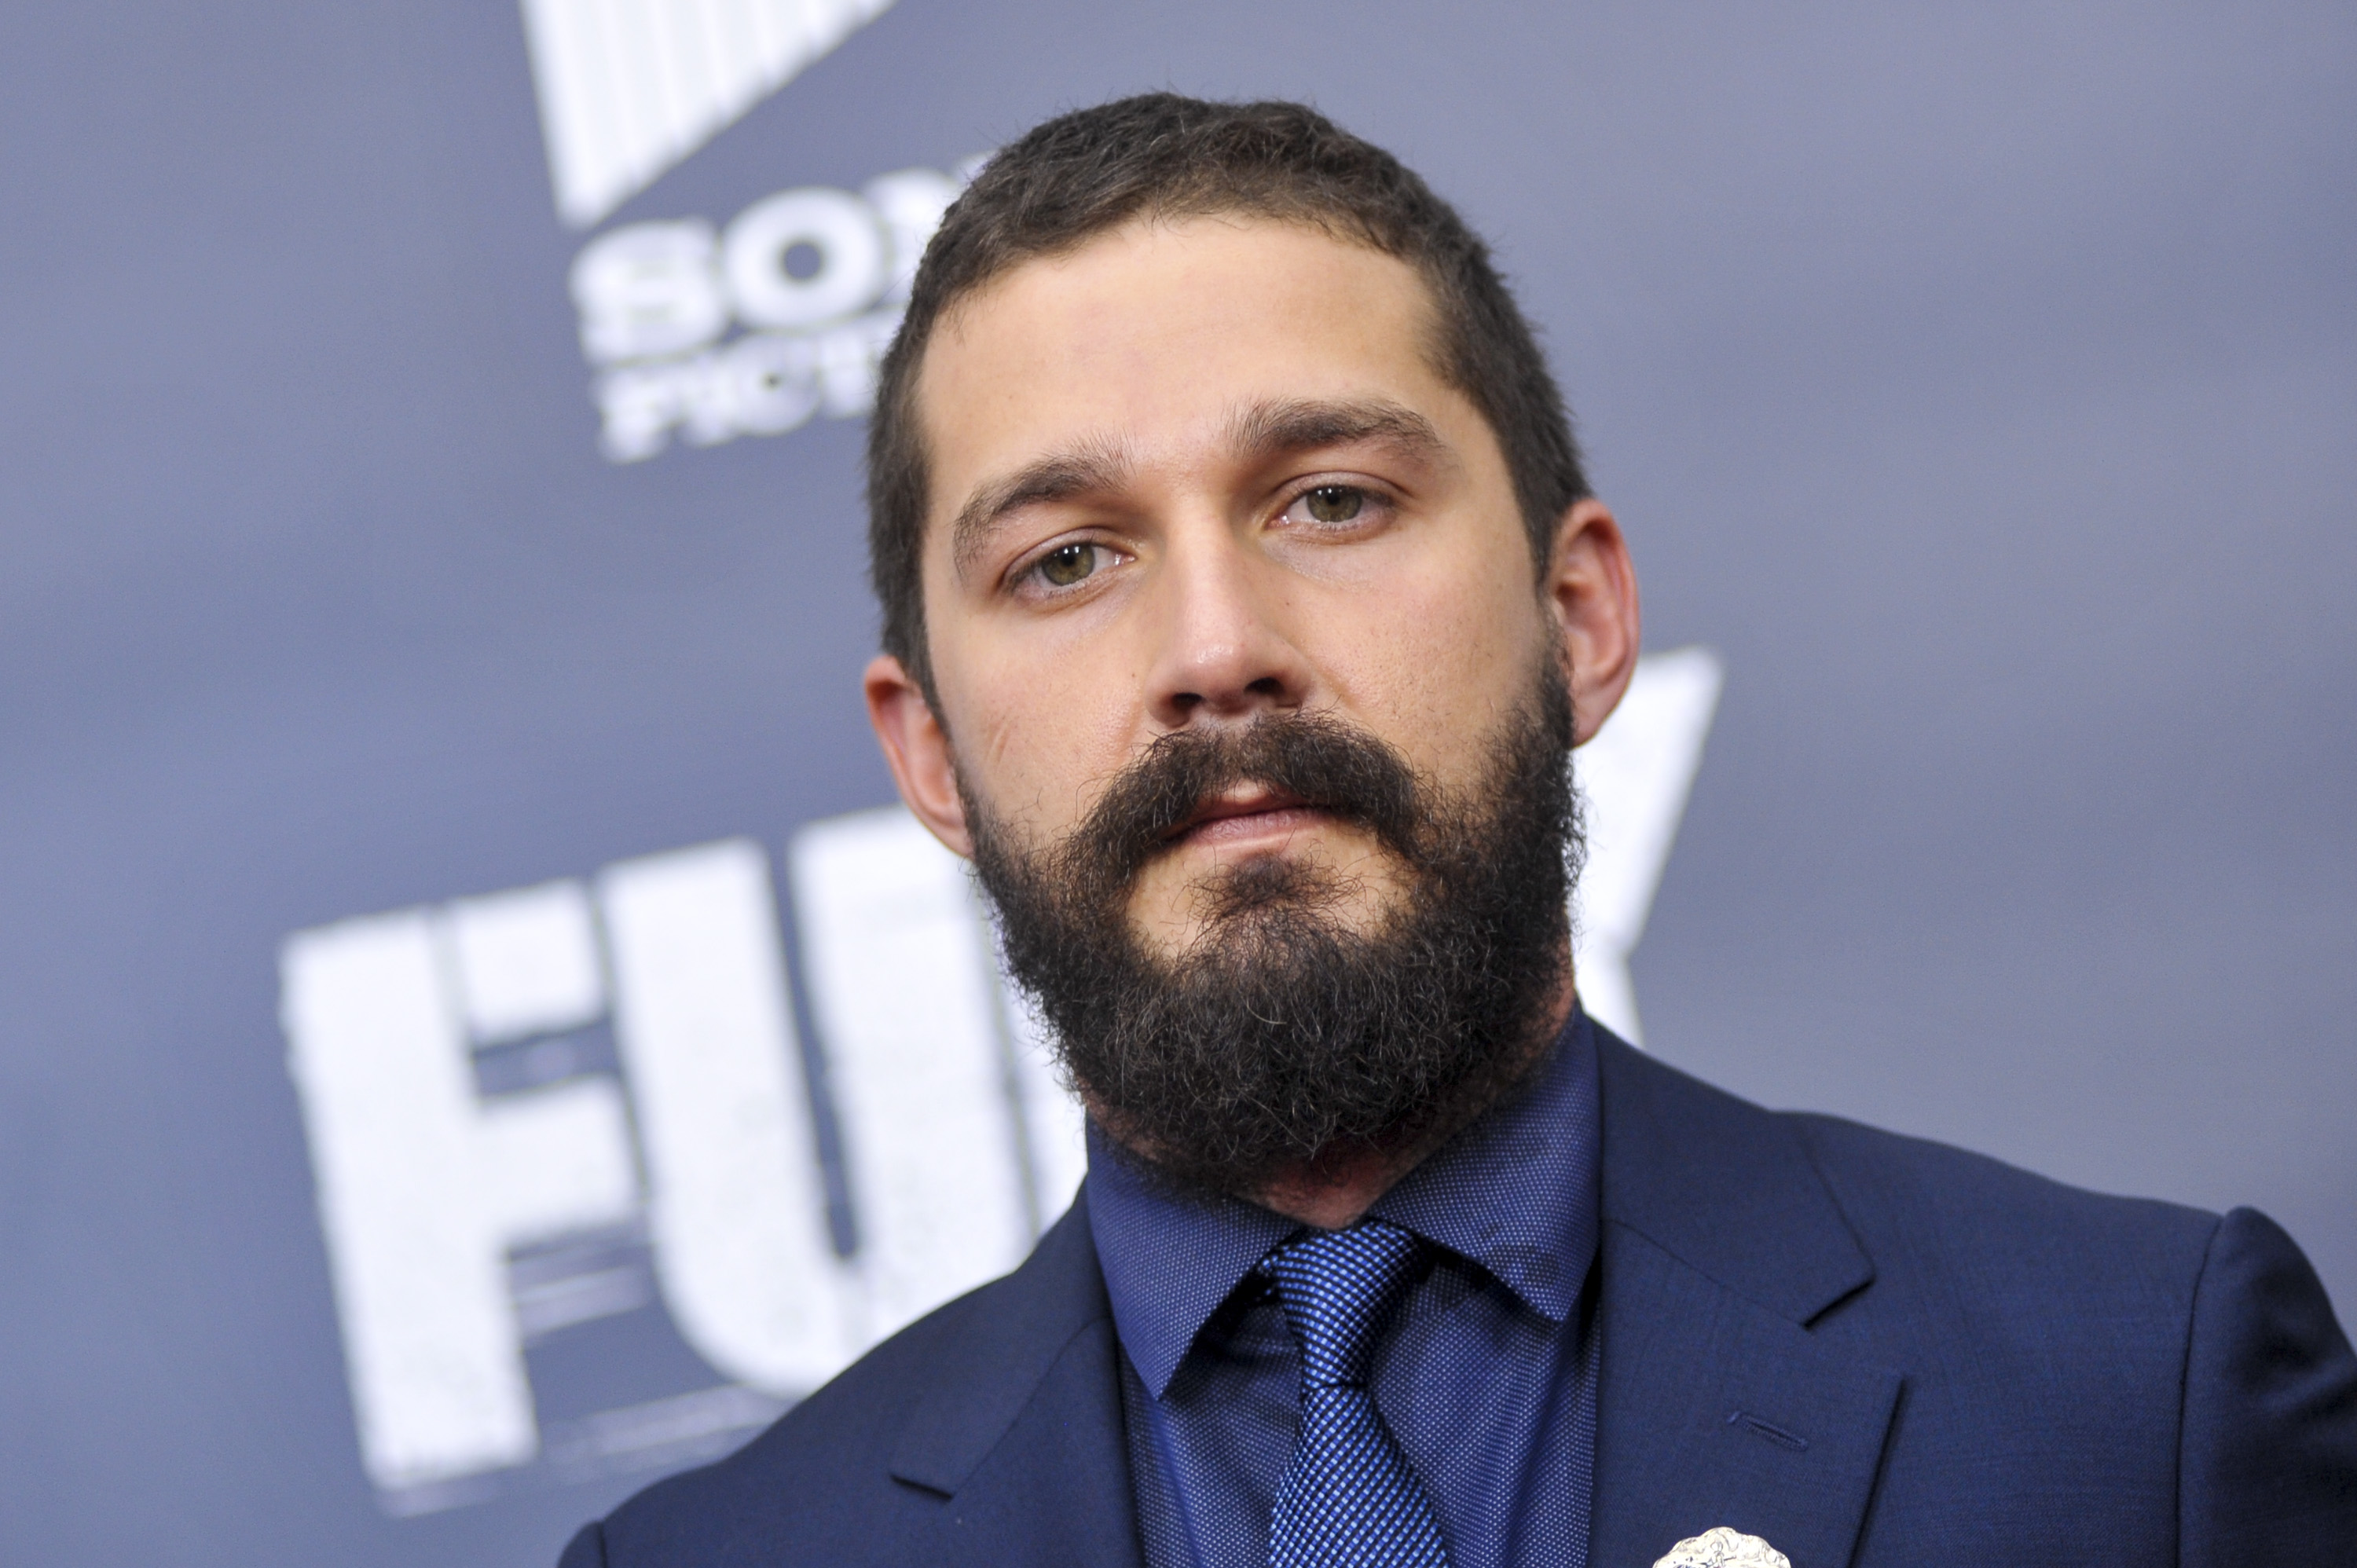 Shia LaBeouf has revealed he got 12 tattoos during production of American Honey (Picture: Getty Images)